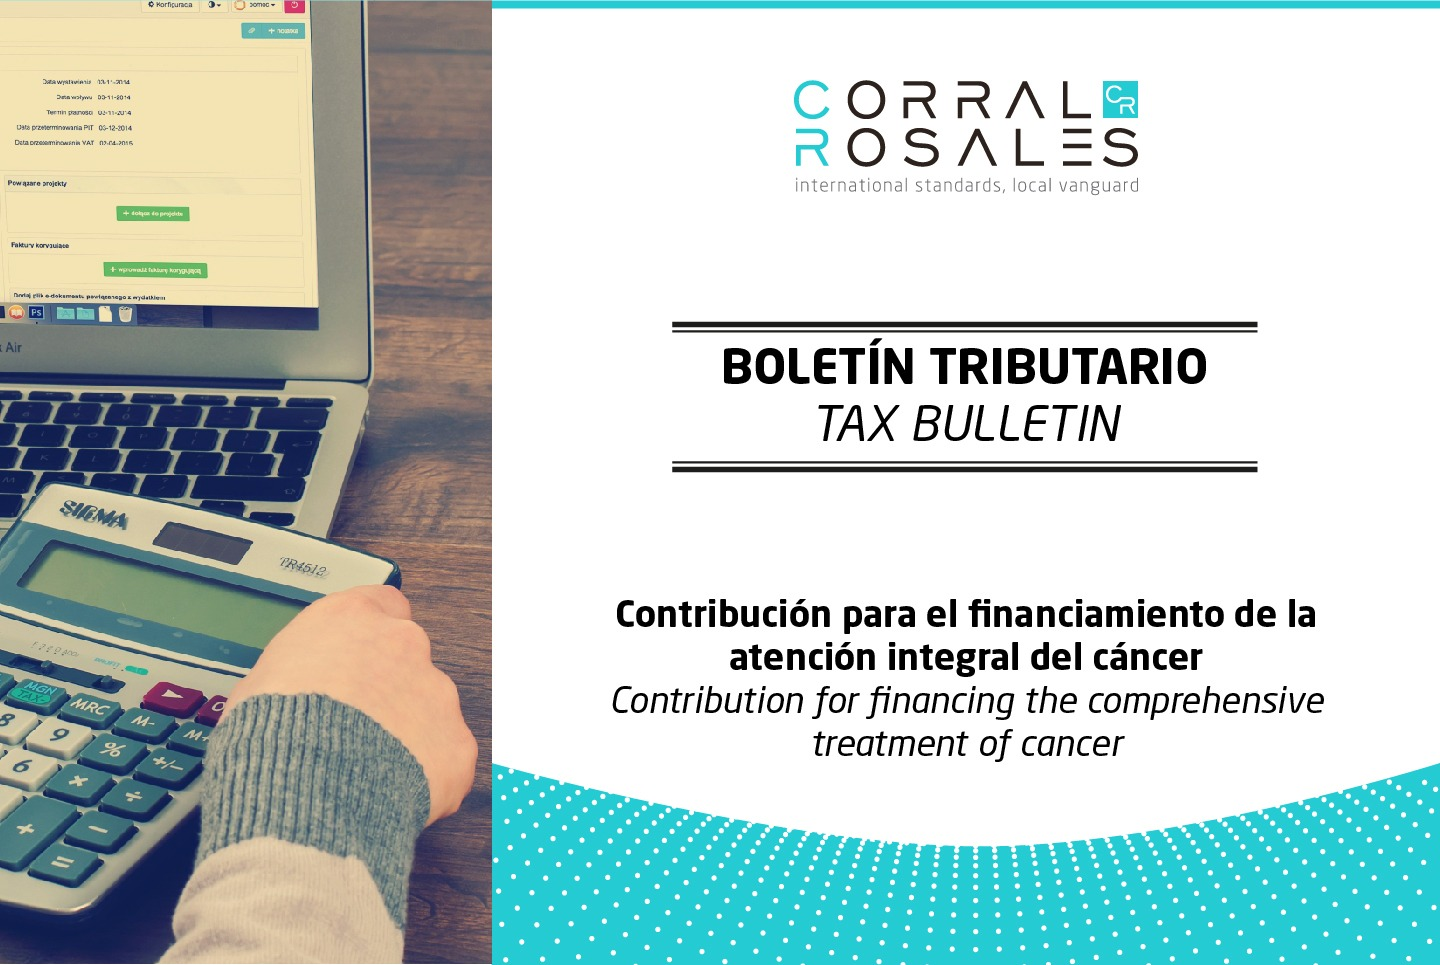 cancer-atencion-integral-tributario-01-abogados-ecuador